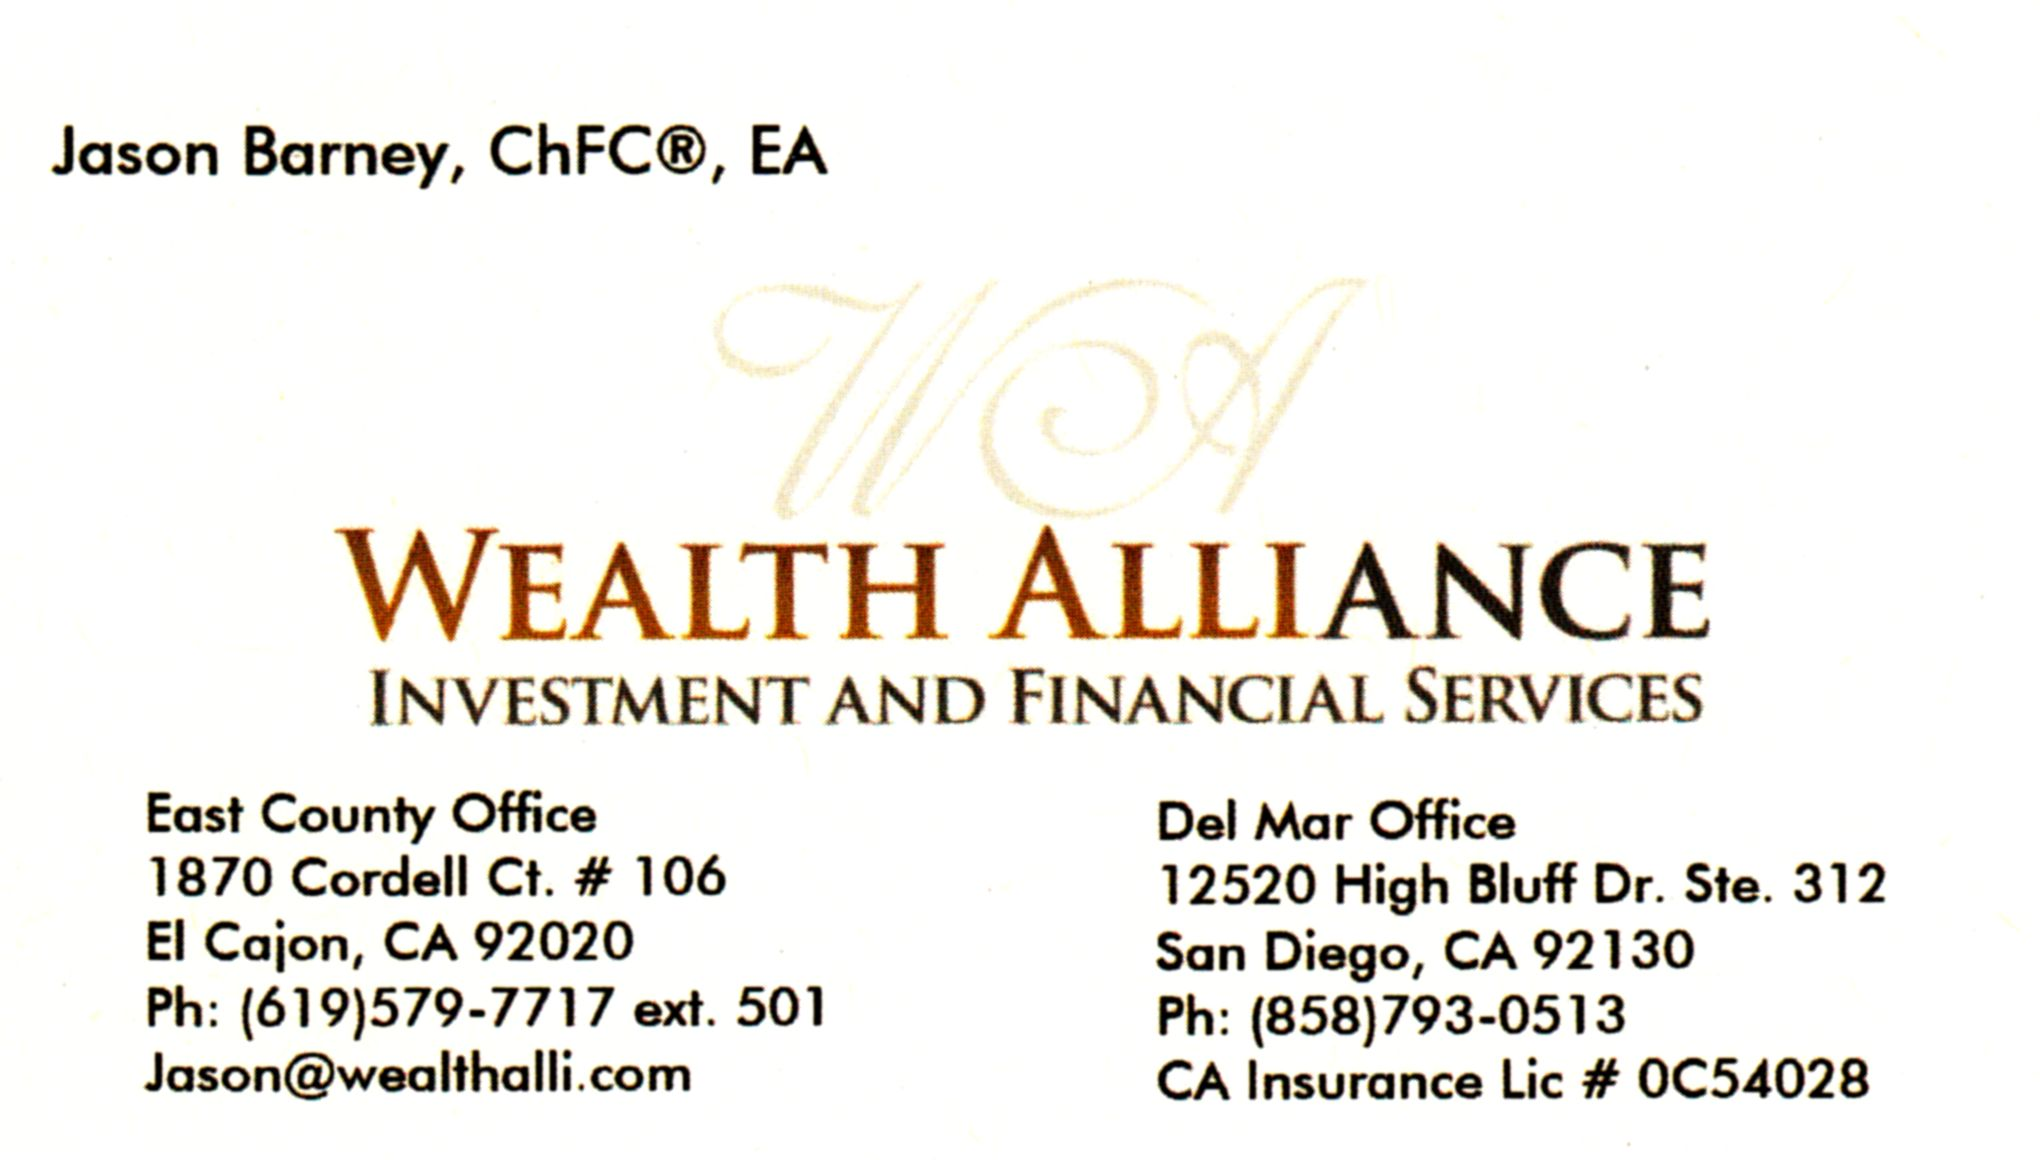 Wealth Alliance investment and financial services